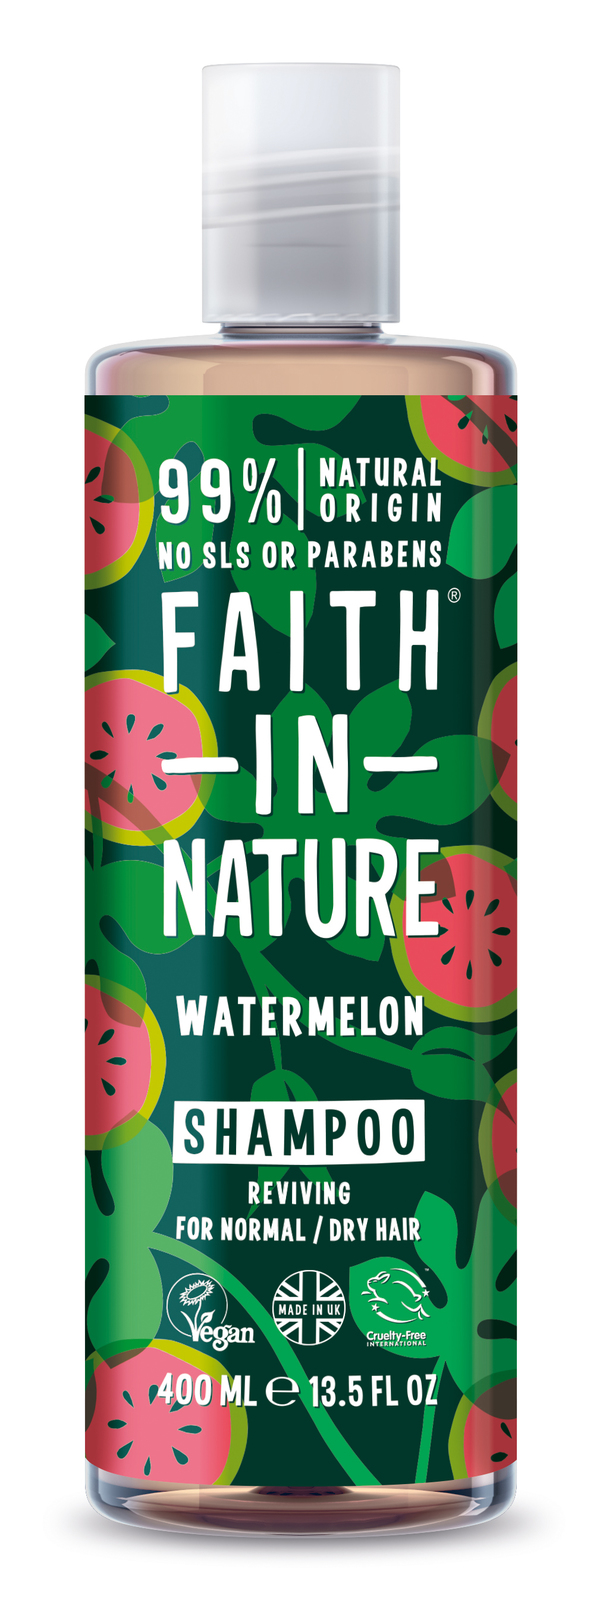 Faith In Nature: Watermelon Shampoo for Normal/Dry Hair (400ml) image